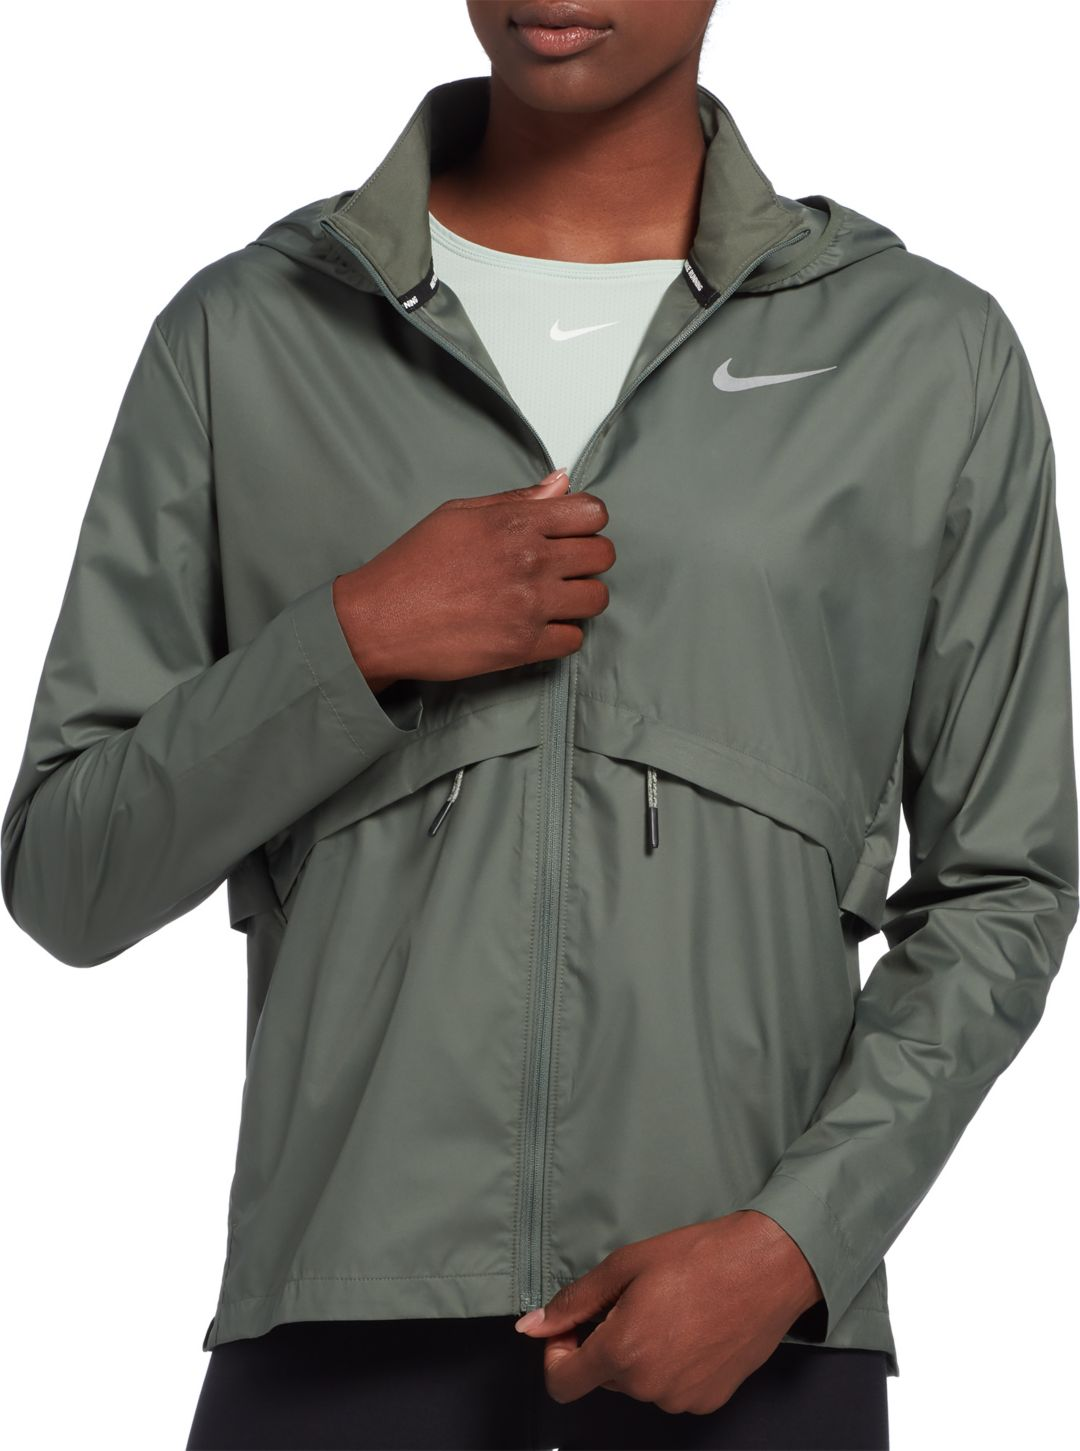 7a1fe7124cae7 Nike Women's Essential Hooded Running Jacket | DICK'S Sporting Goods